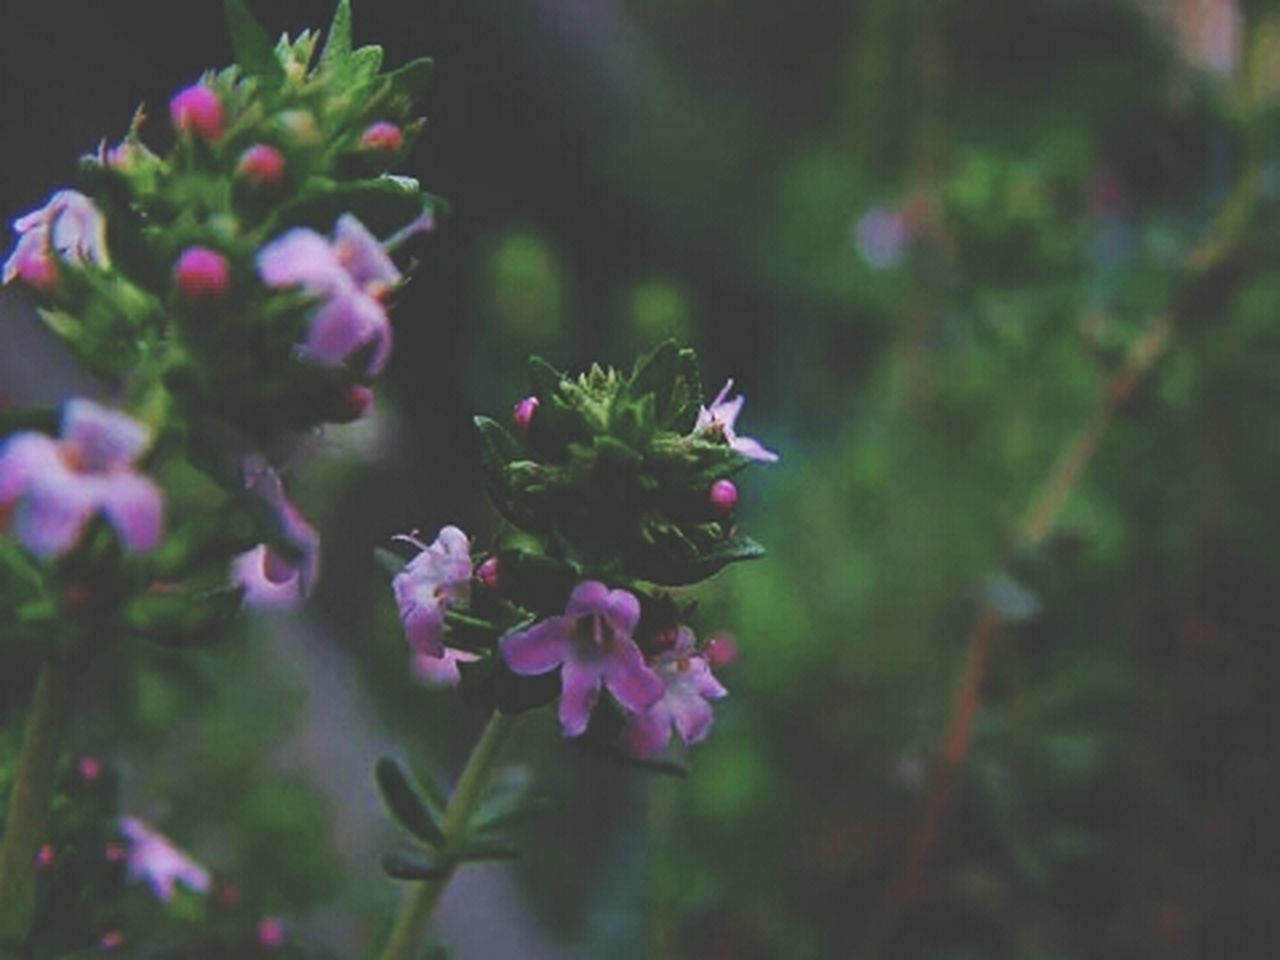 flower, plant, nature, growth, no people, fragility, beauty in nature, day, outdoors, close-up, freshness, blooming, flower head